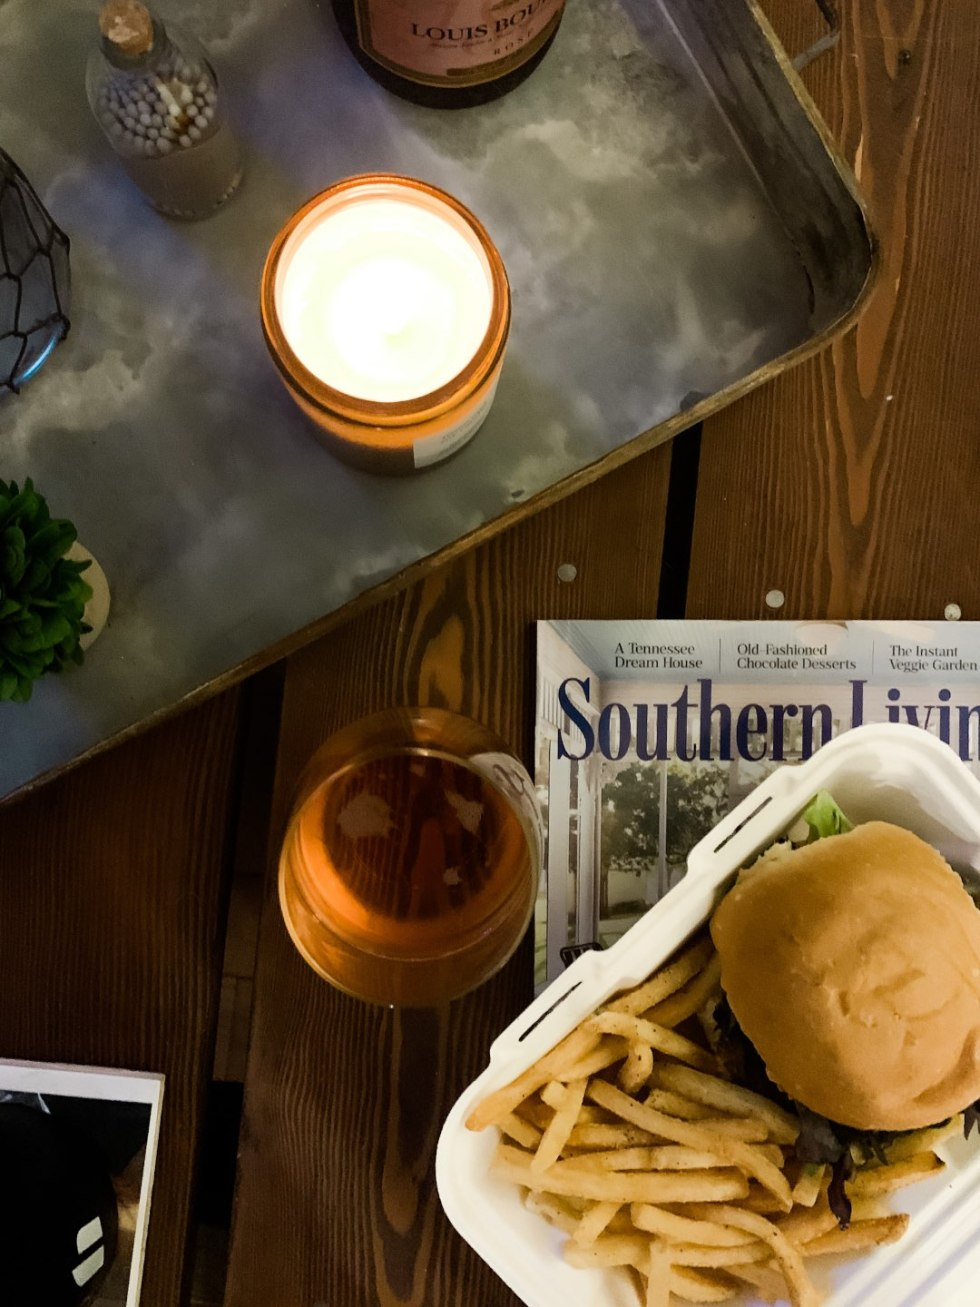 Top 10 Best Wines by popular N.C. lifestyle blog, I'm Fixin' To: image of a bottle of Louis Bouillot Perle d'Aurore Brut Rosé on a serving tray next to a takeout box containing a burger and fries.